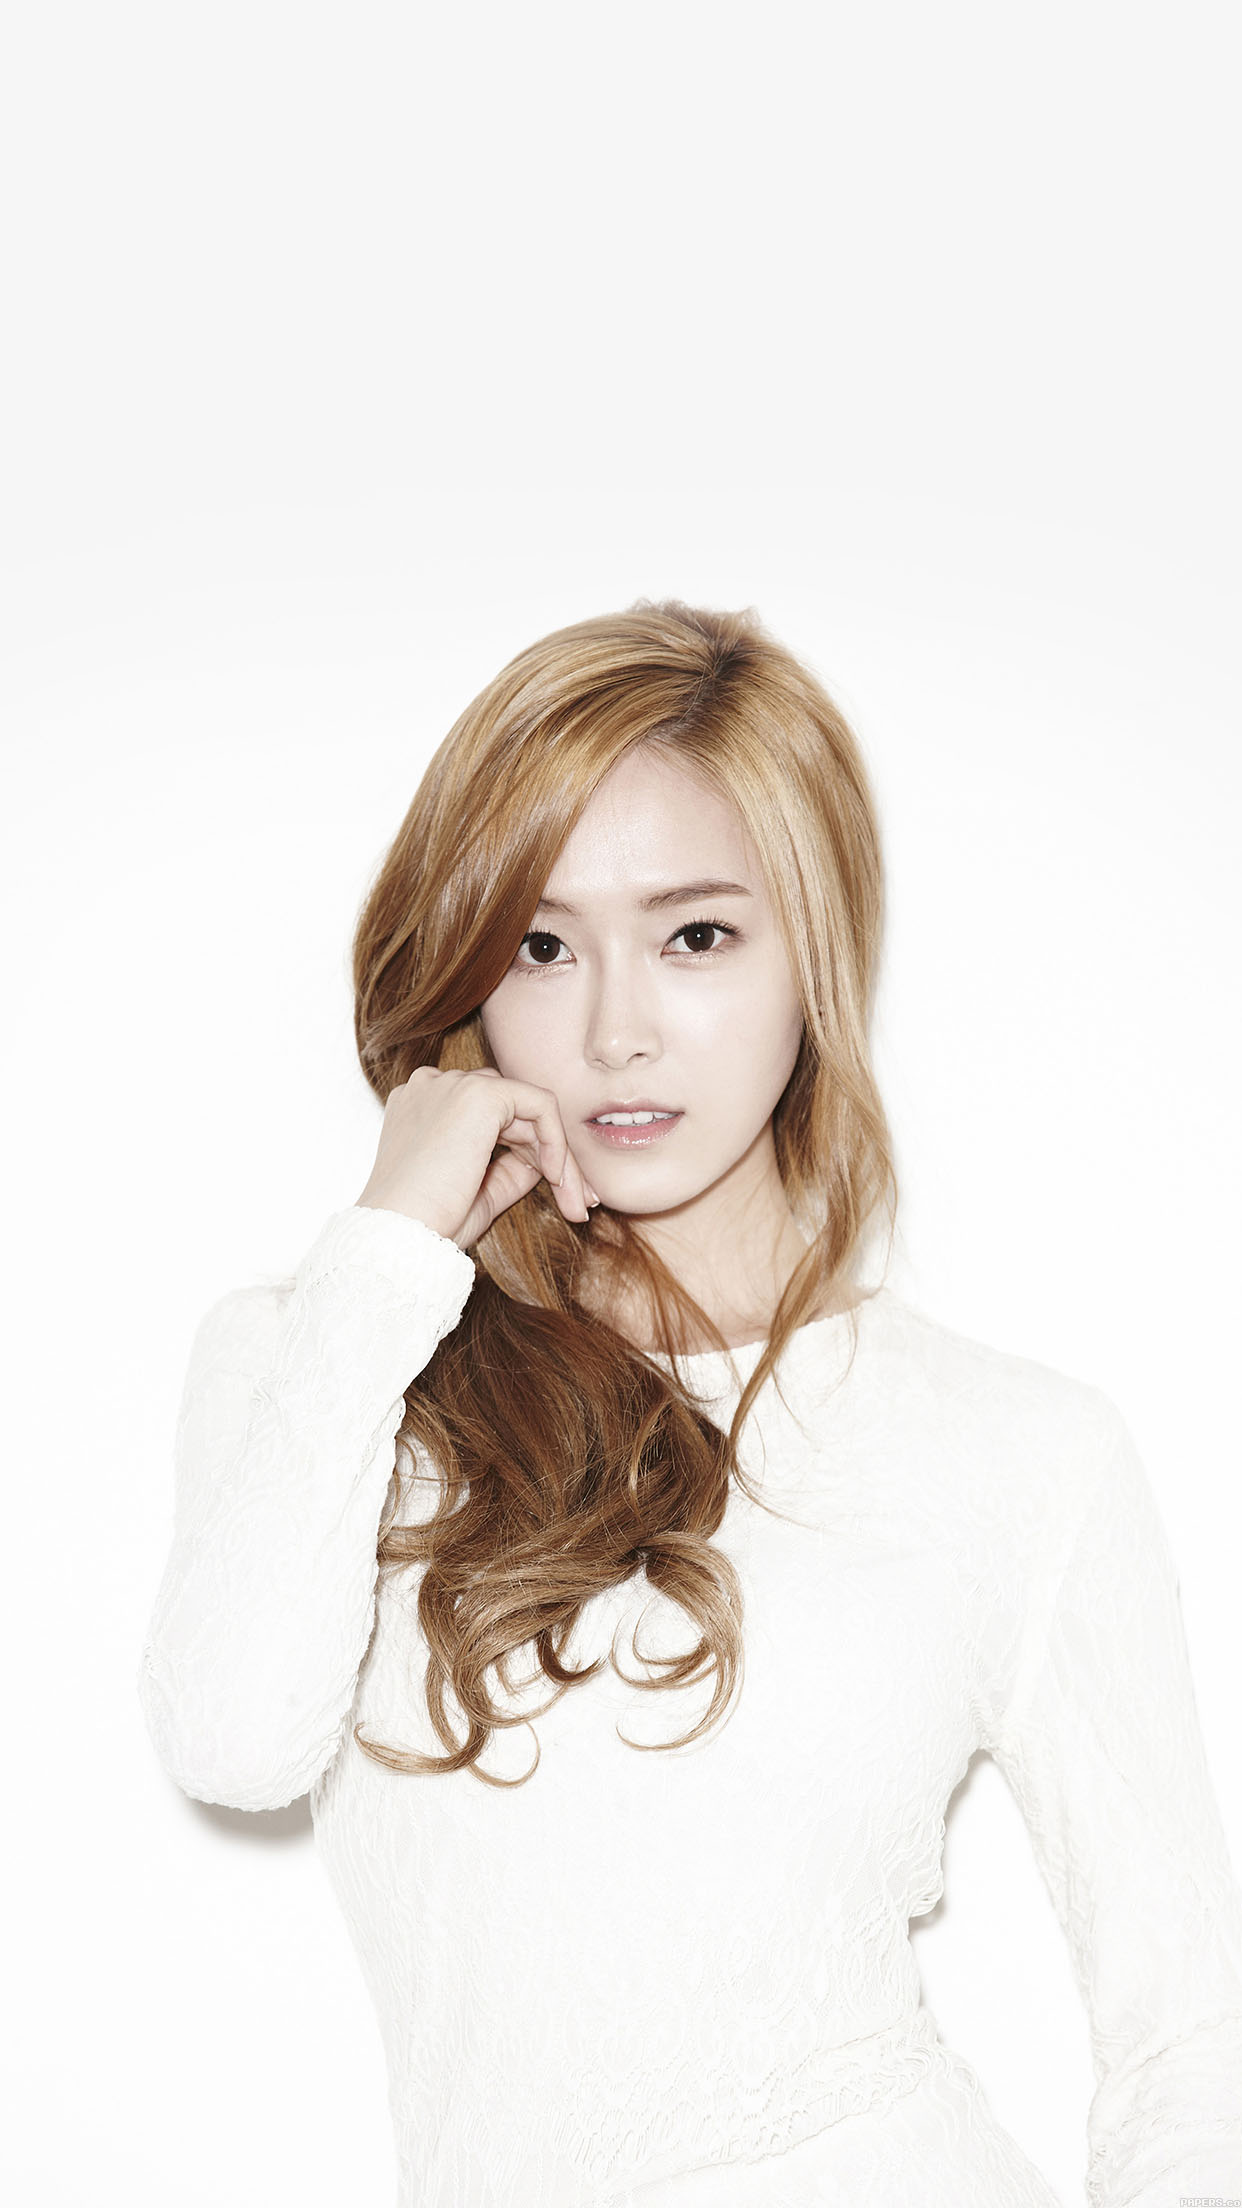 Wallpaper Jessica Snsd Kpop Android wallpaper